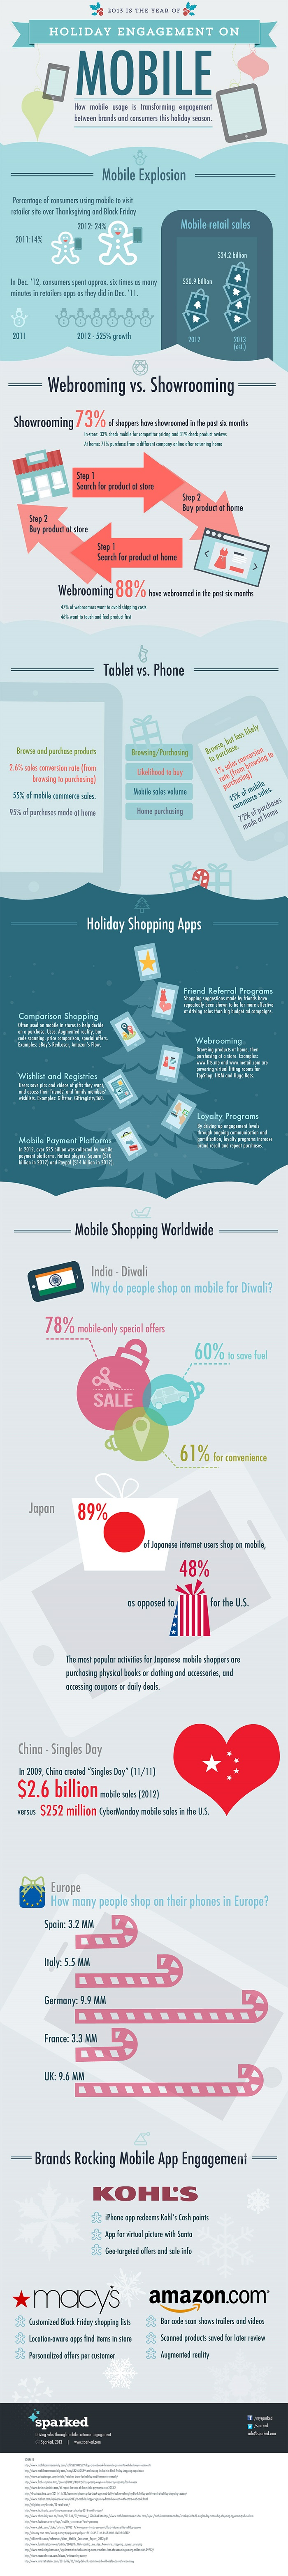 Some Mobile Commerce Stats